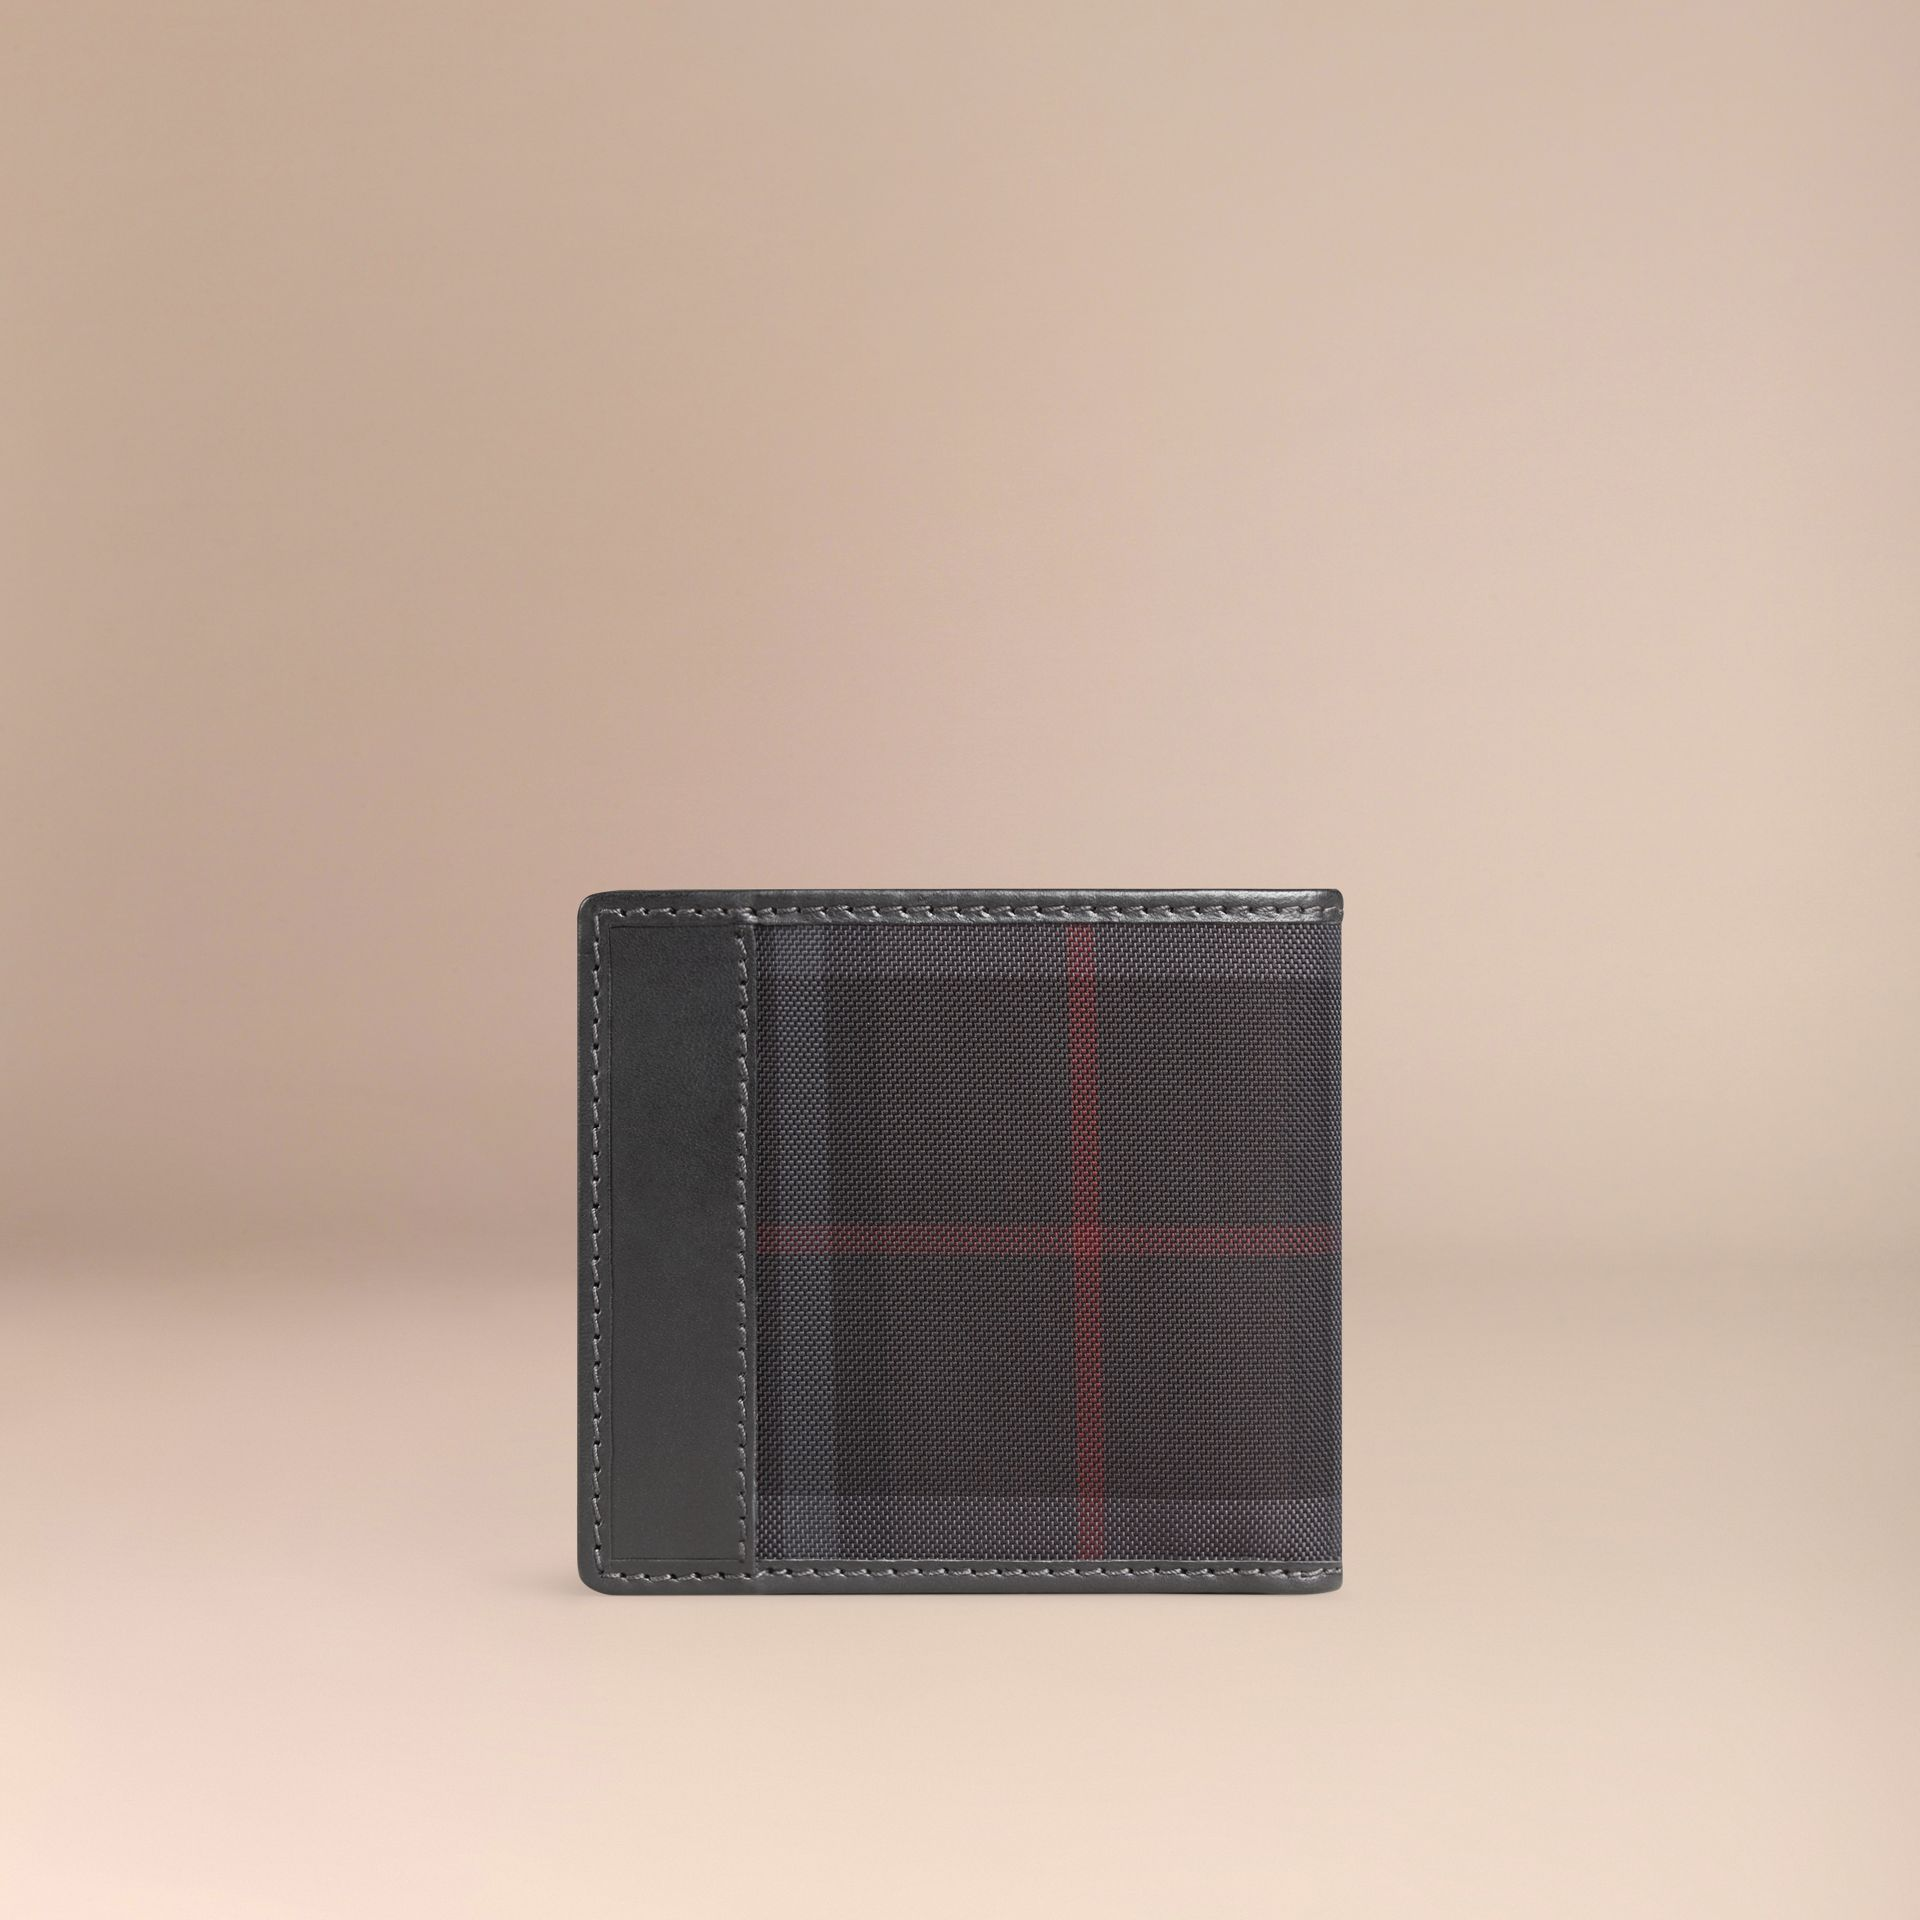 Horseferry Check International Bifold Coin Wallet in Charcoal/black - Men | Burberry Hong Kong - gallery image 3